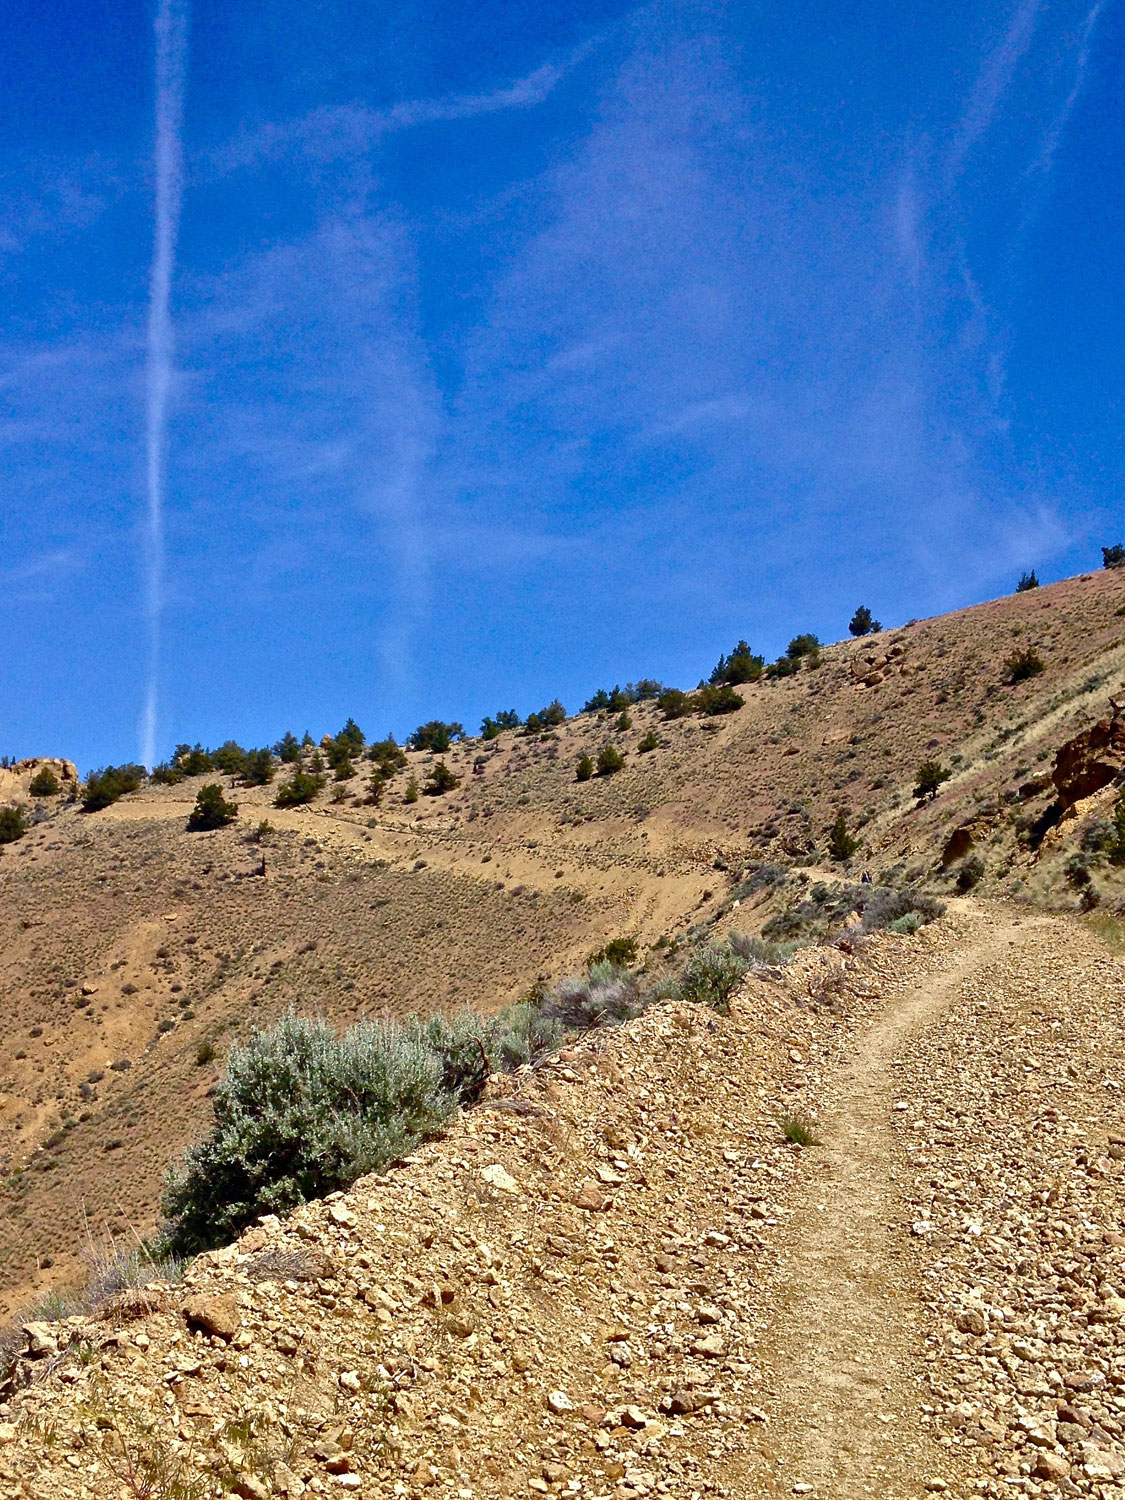 The Burma Road outside of Smith Rock State Park stretches into the distance toward the summit.